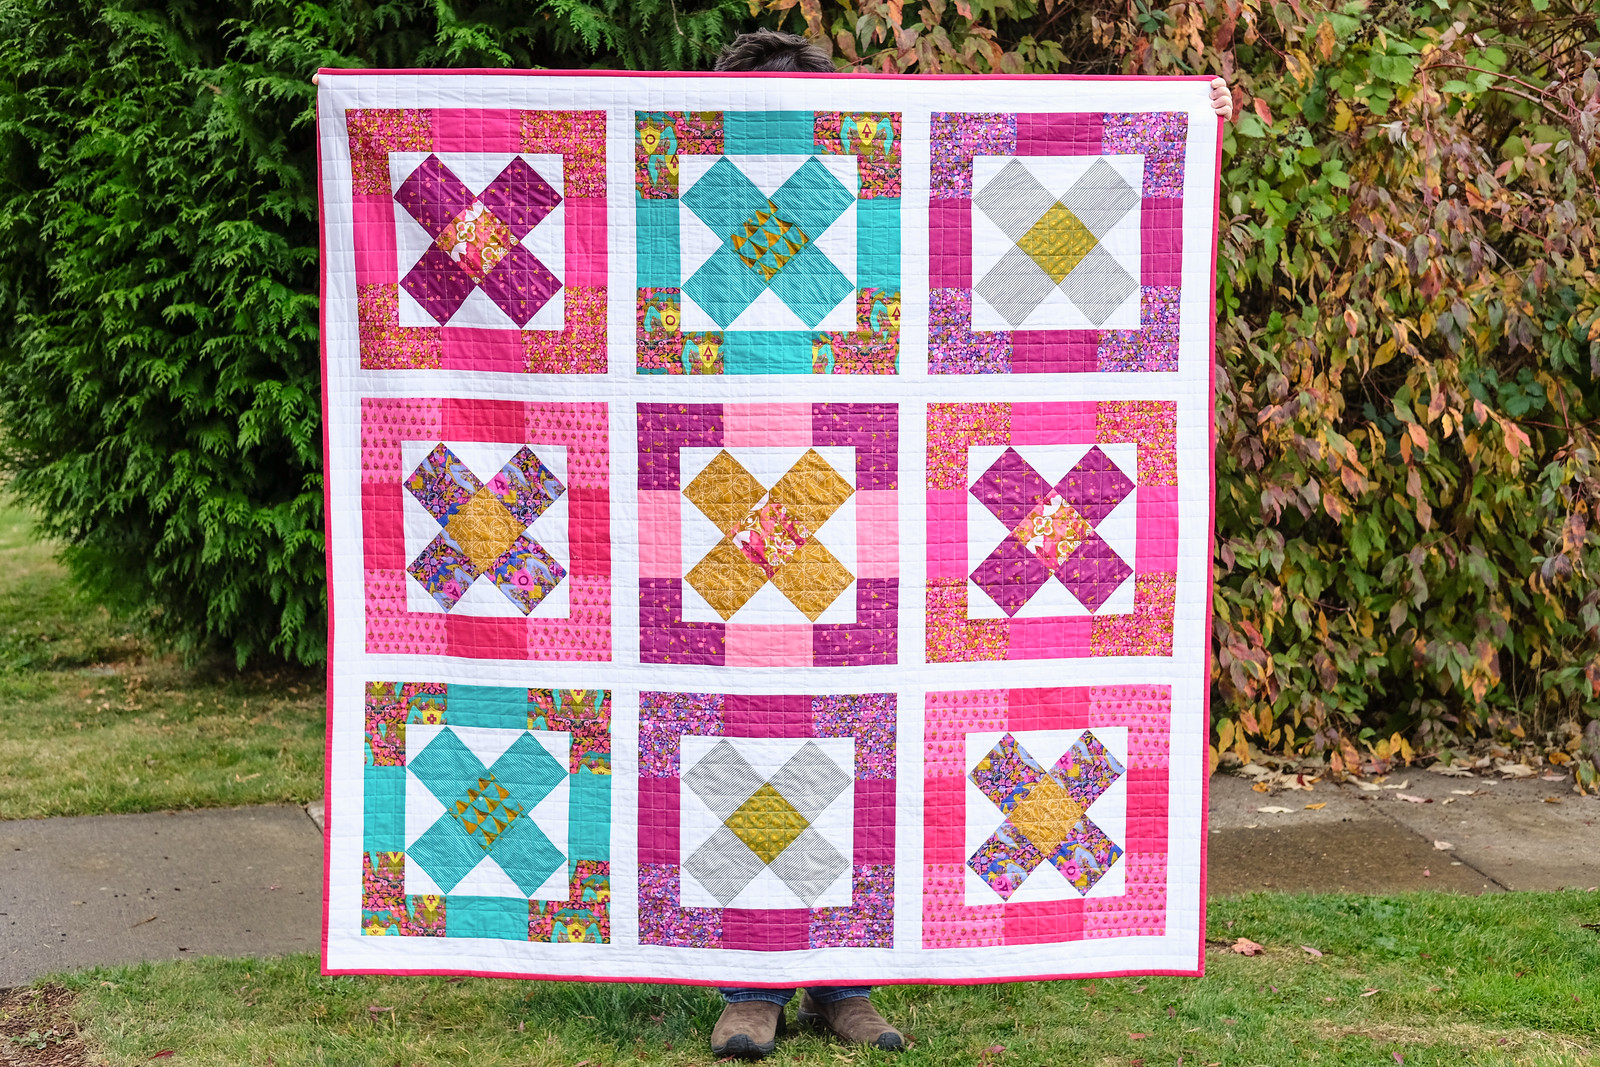 Kriss Cross in Road Trip - Modern Quilts Block by Block Book Tour